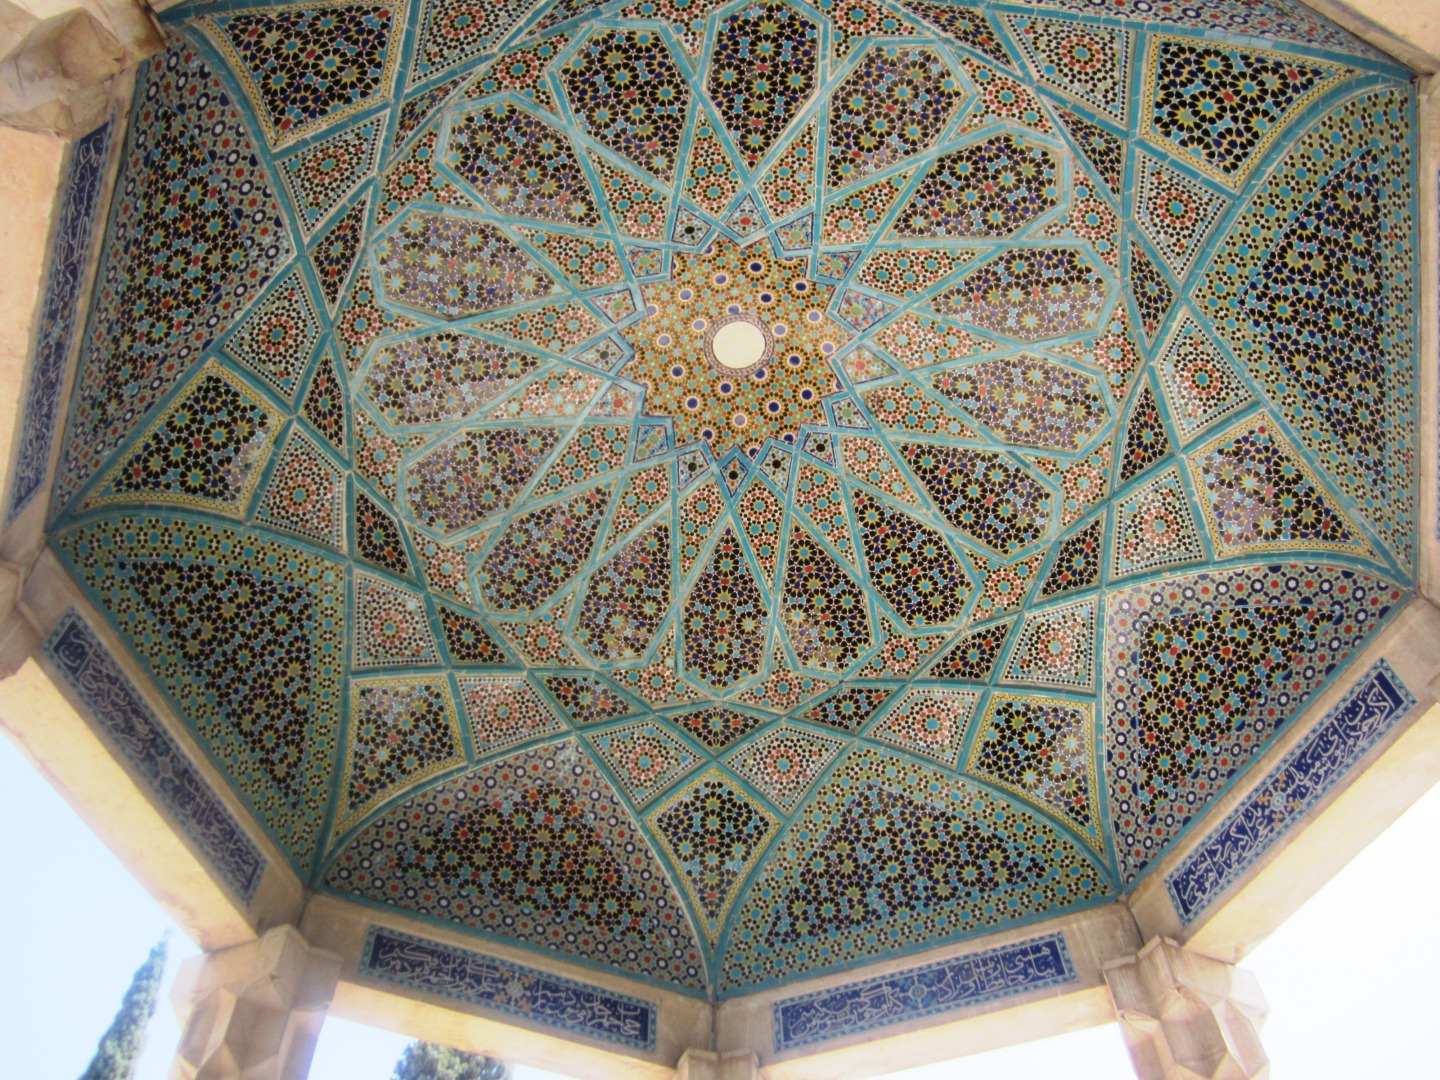 tomb-of-hafez